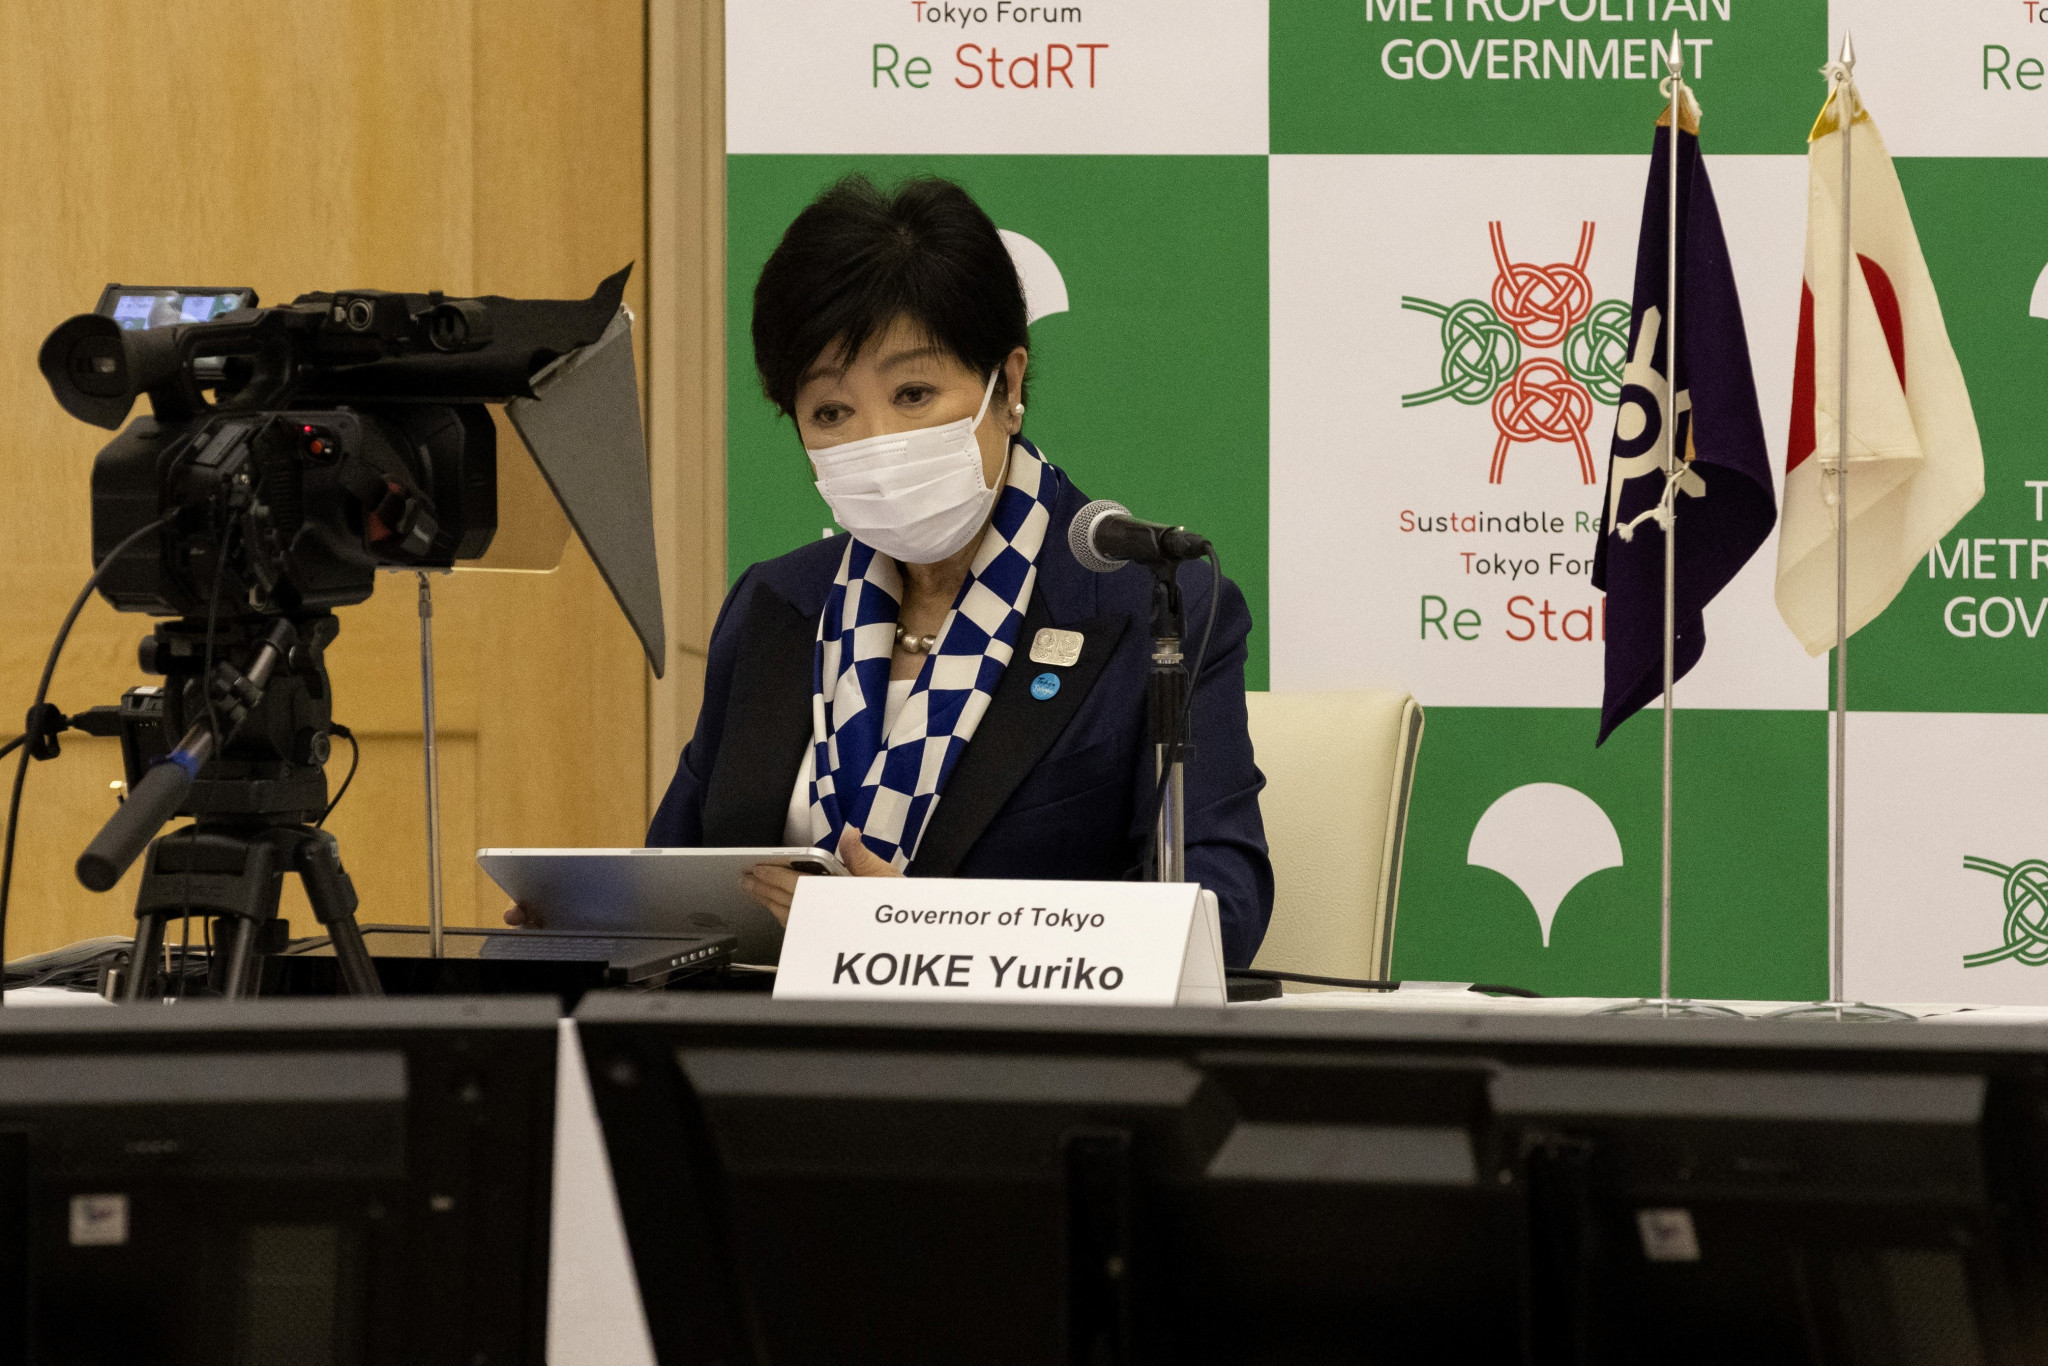 Tokyo Governor Yuriko Koike has pledged to create a sustainable recovery from the COVID-19 pandemic ©Getty Images